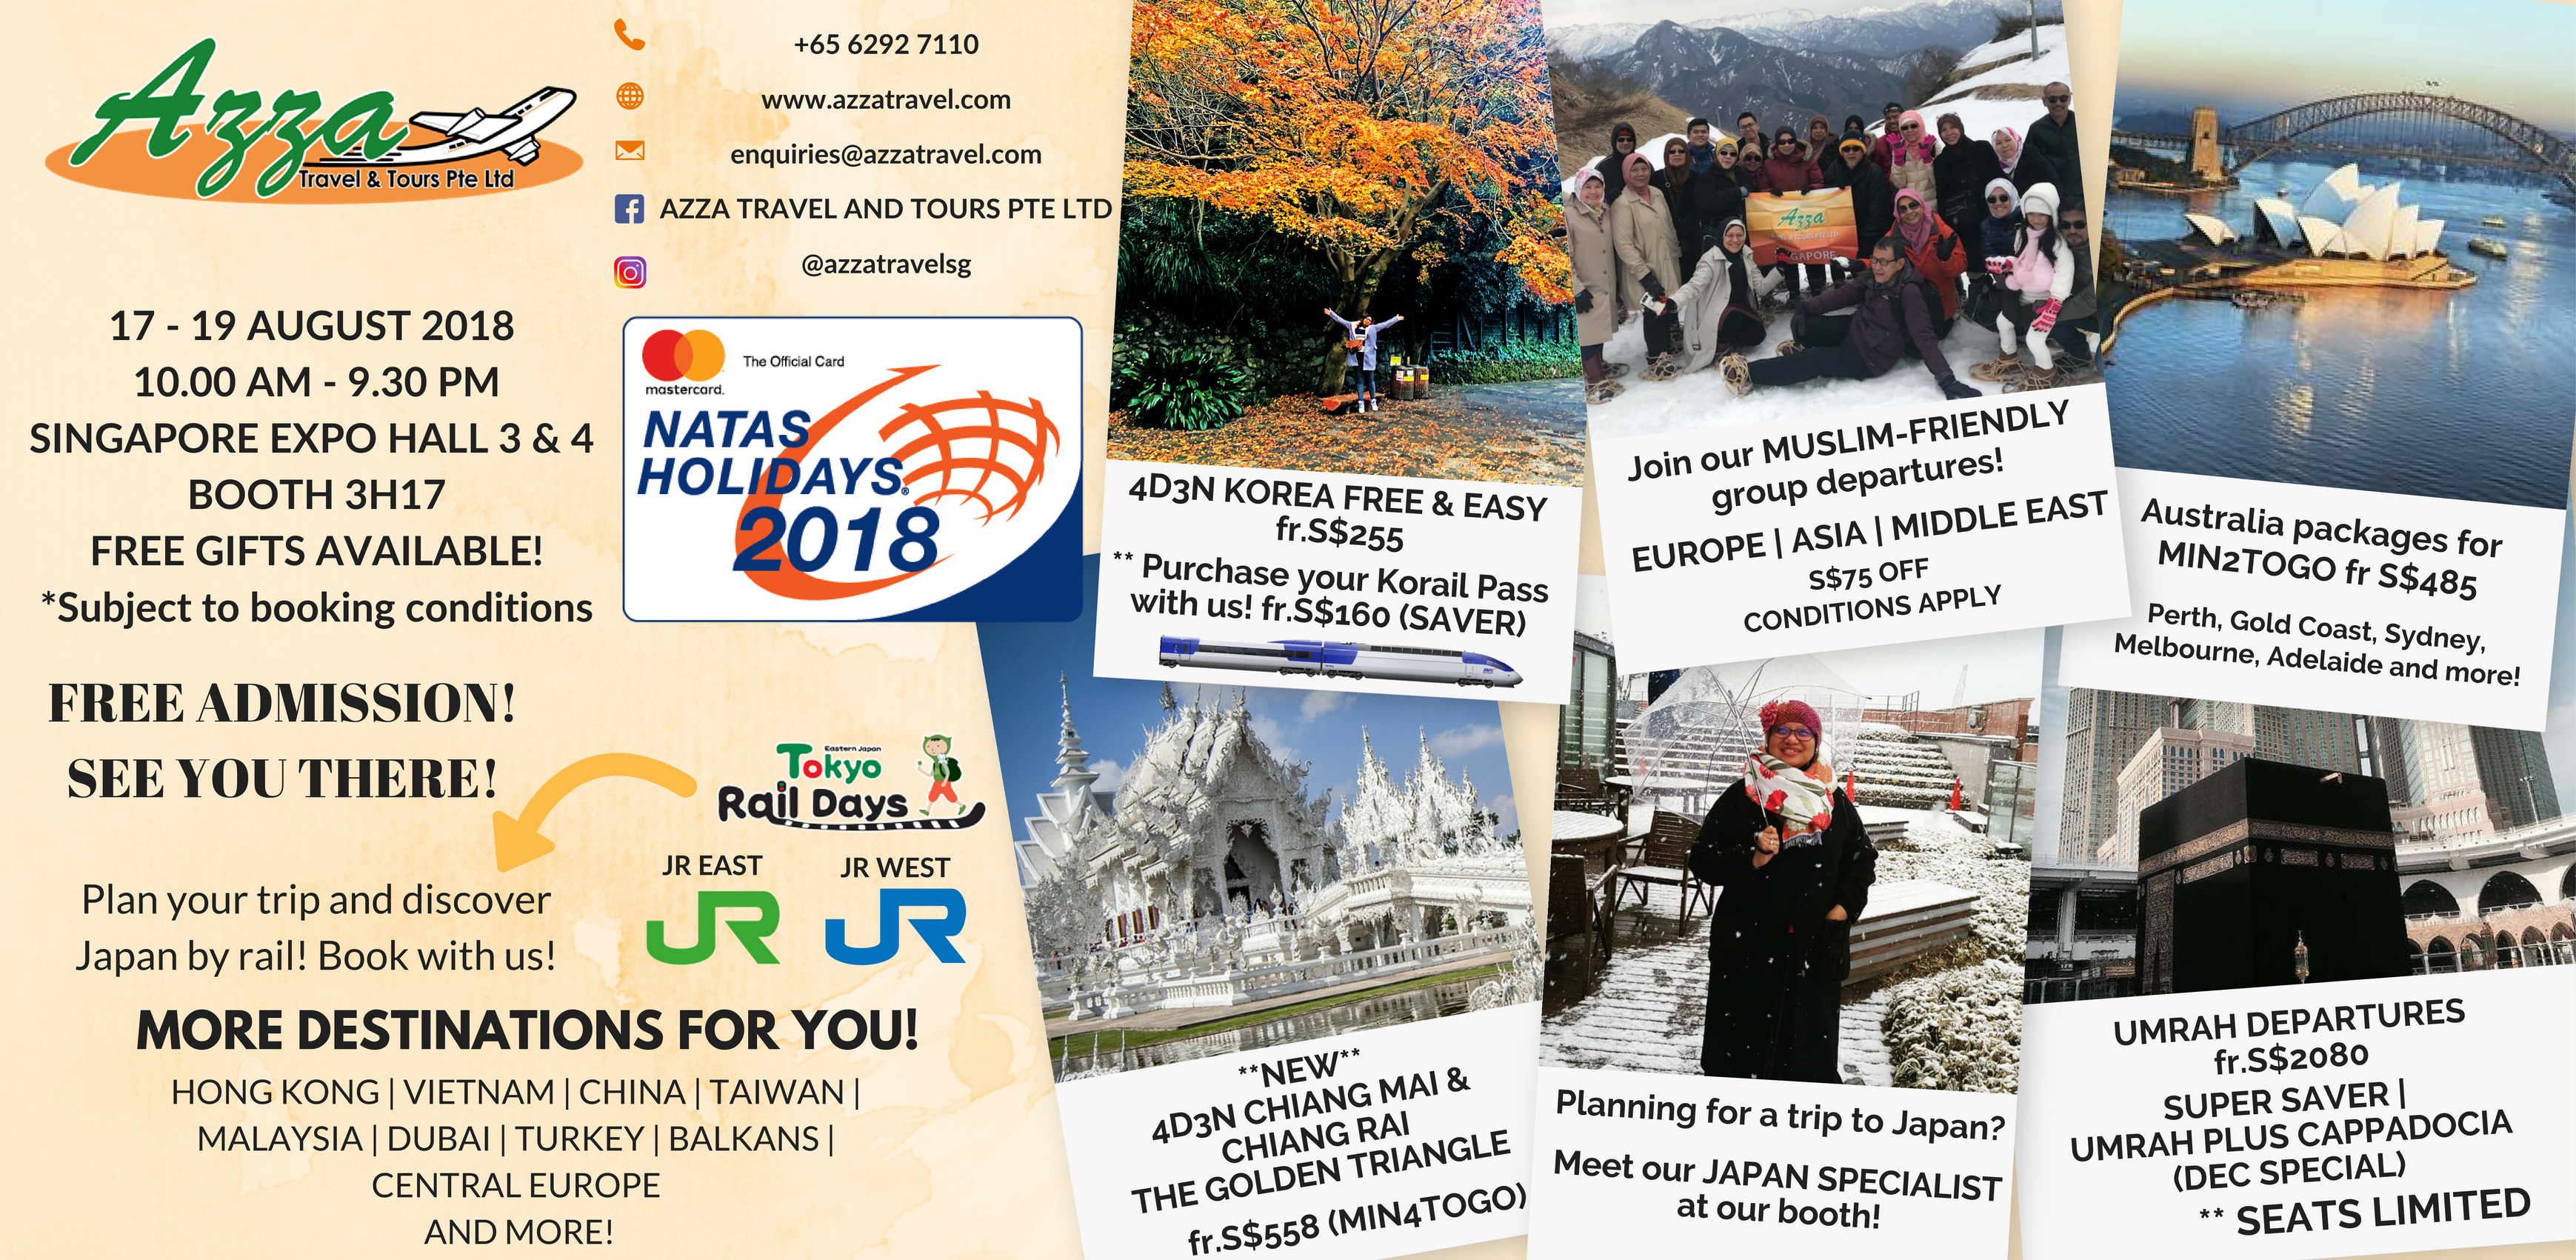 Azza Travel - NATAS August 2018